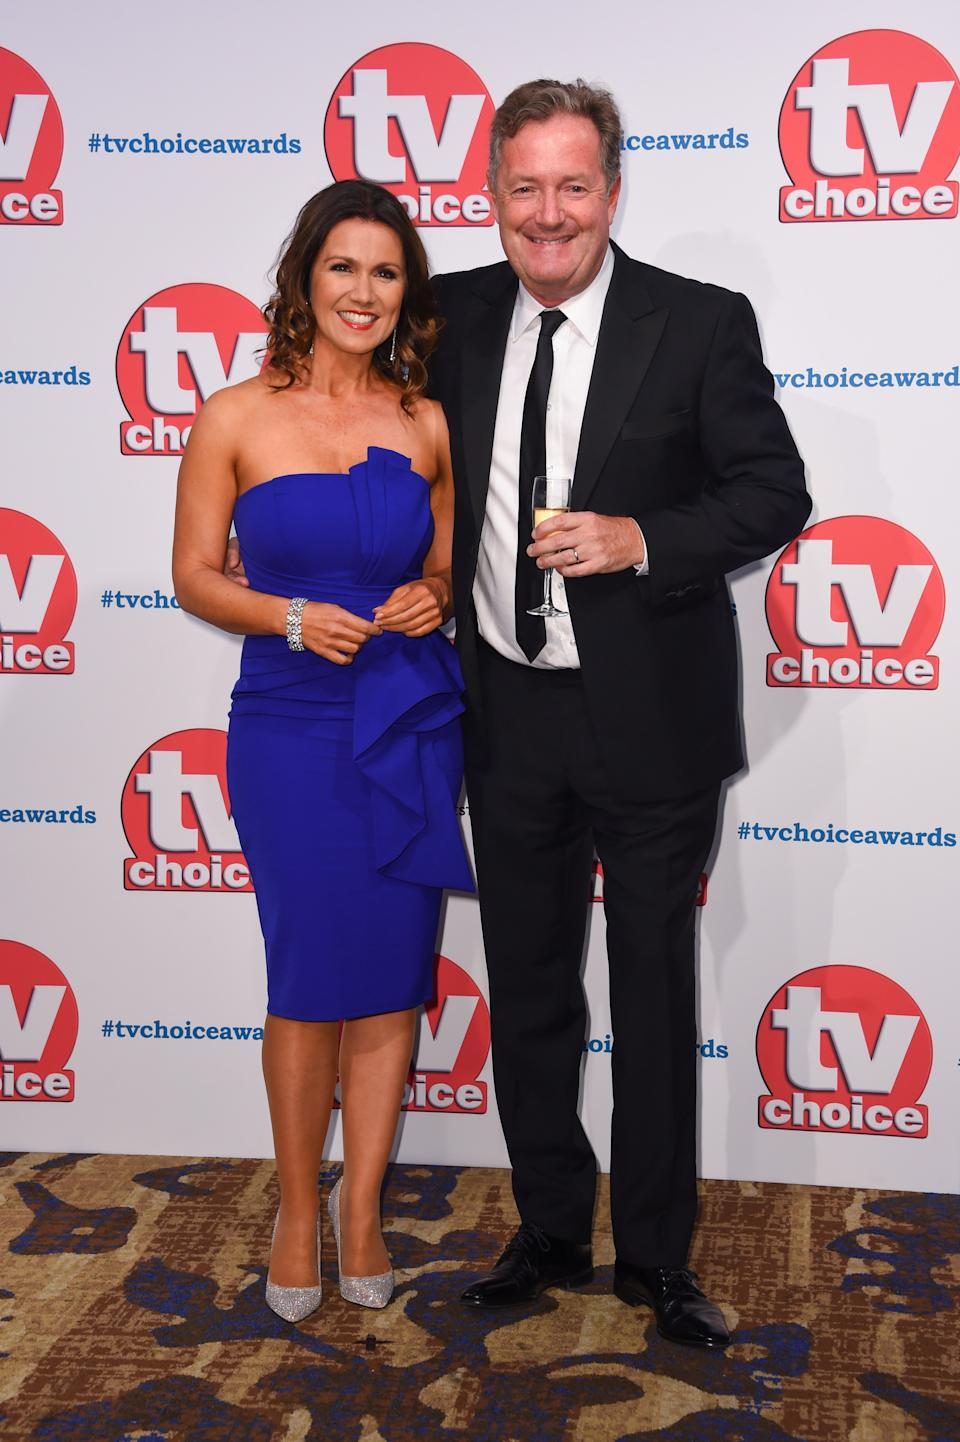 Susanna Reid and Piers Morgan attending the TV Choice Awards held at the Hilton Hotel, Park Lane, London. (Photo by Matt Crossick/PA Images via Getty Images)